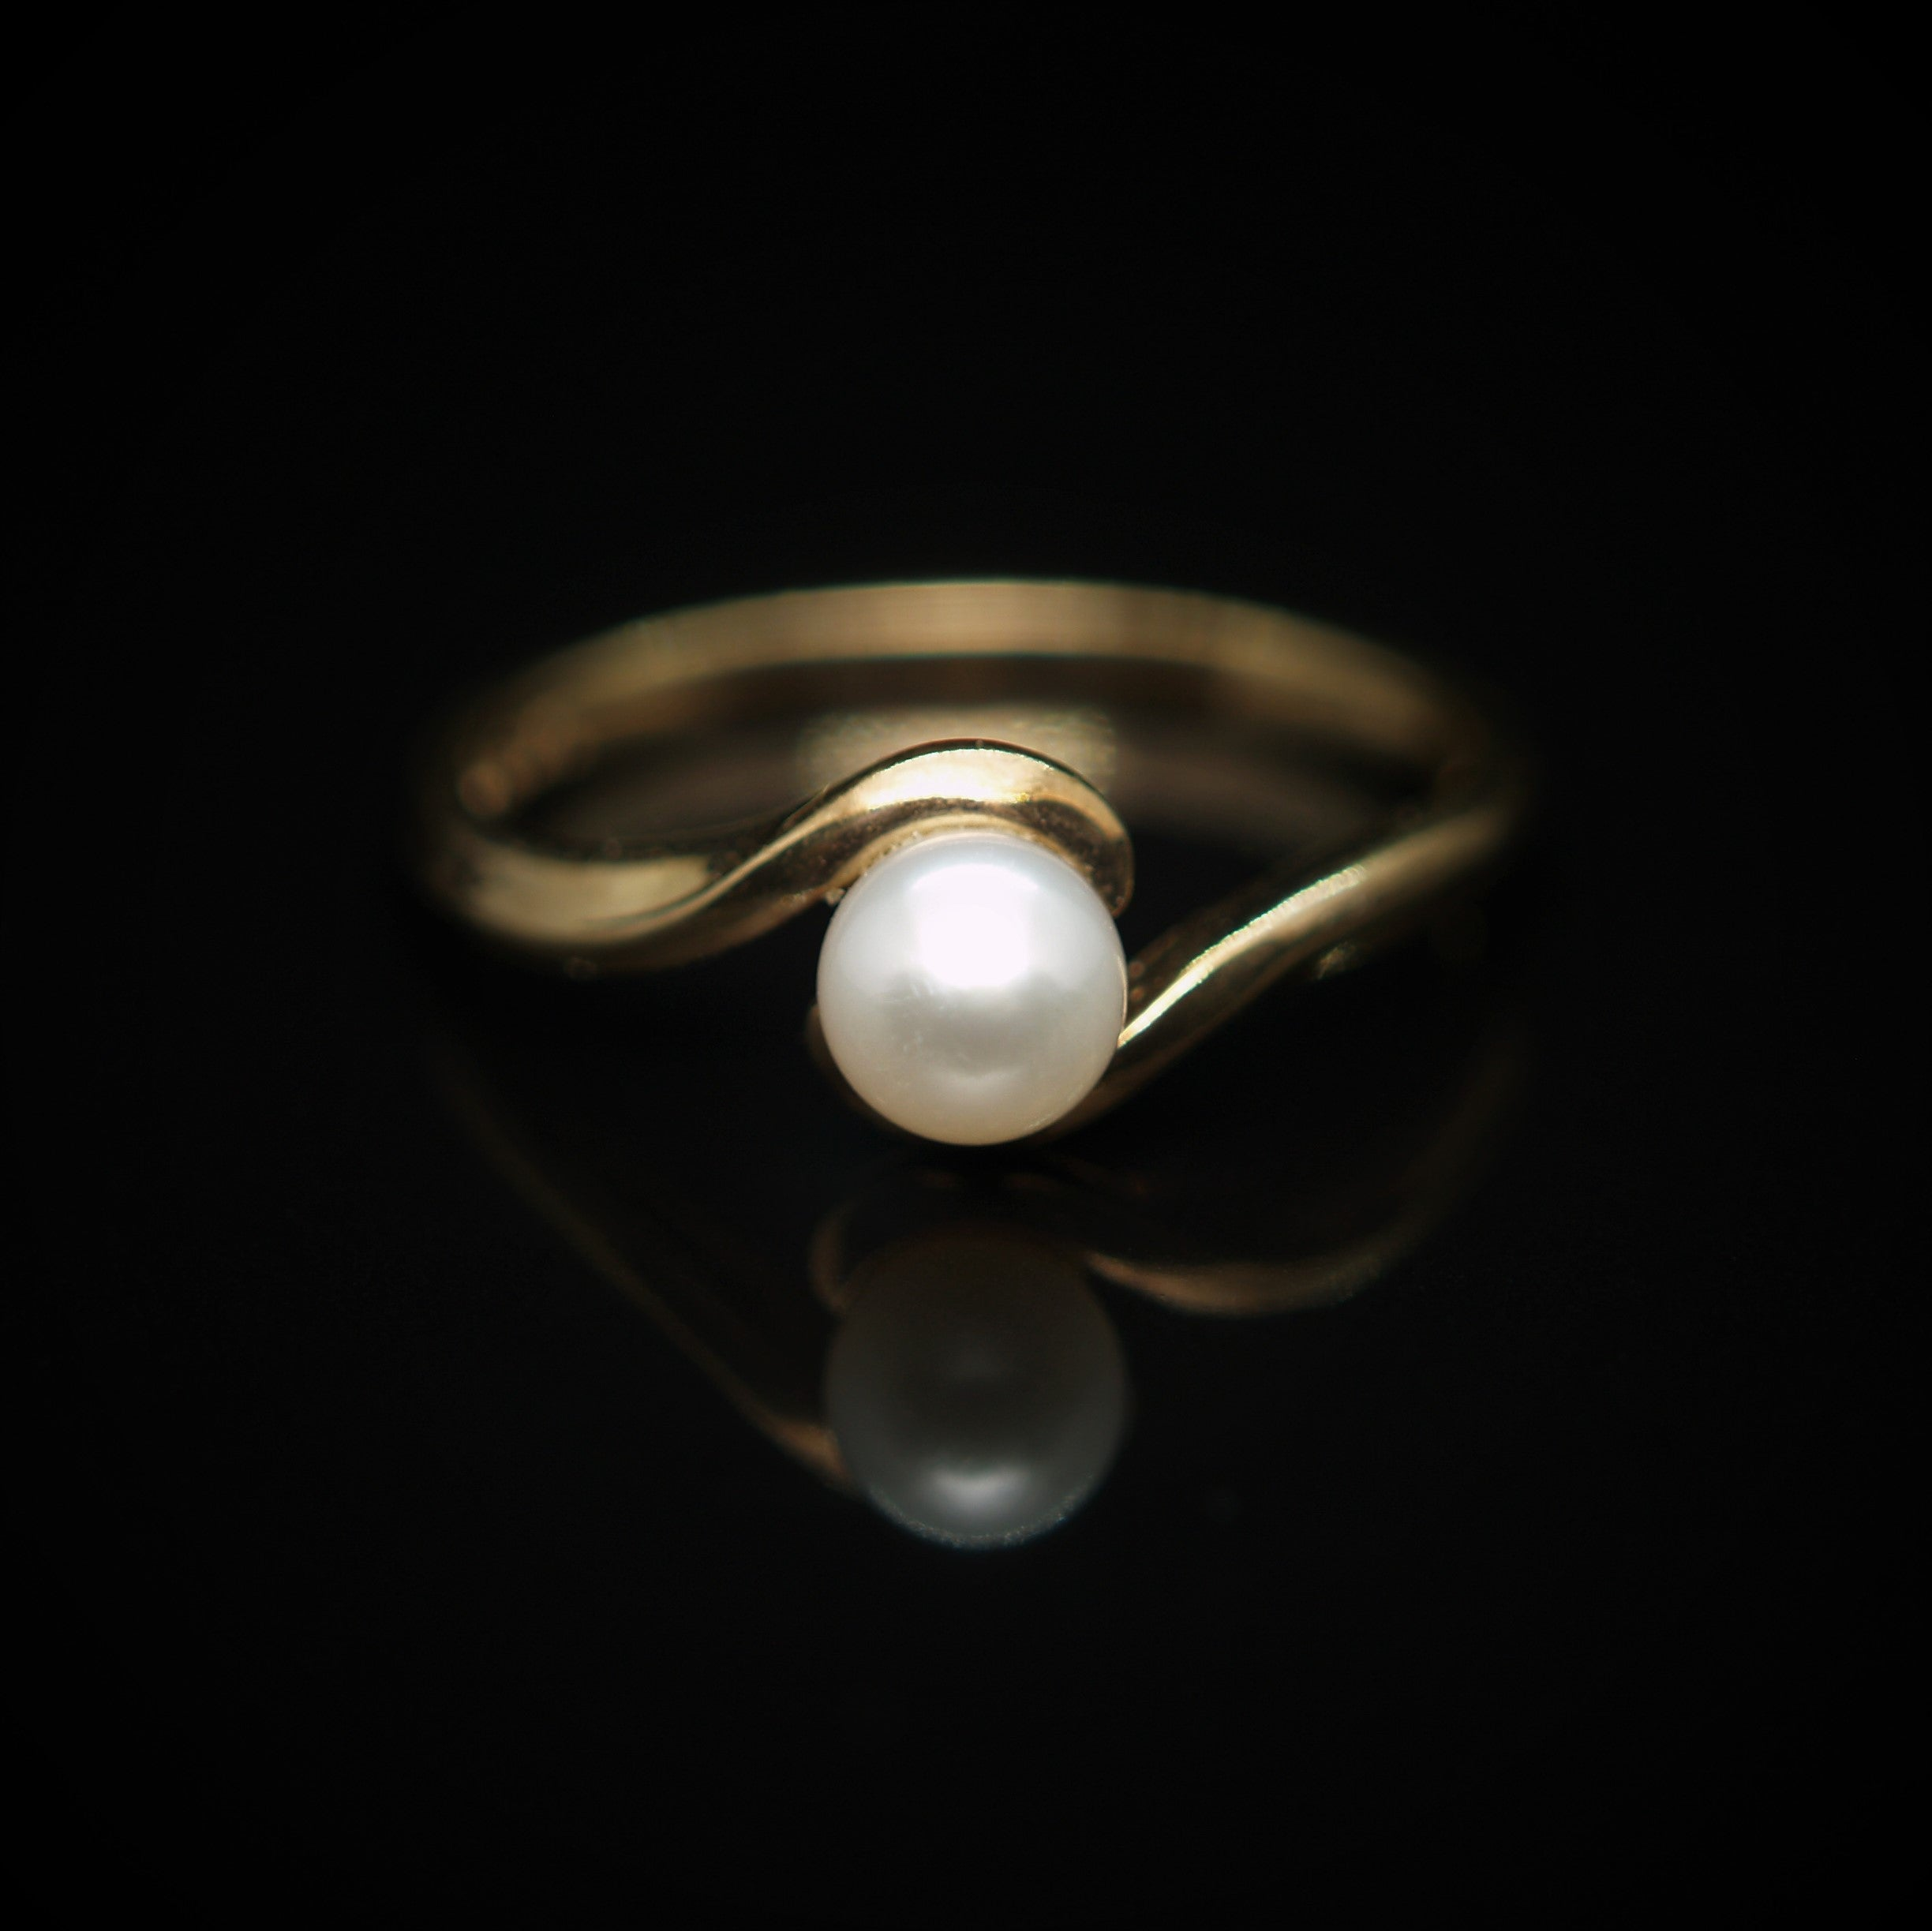 9ct Gold Cultured Pearl Ring.